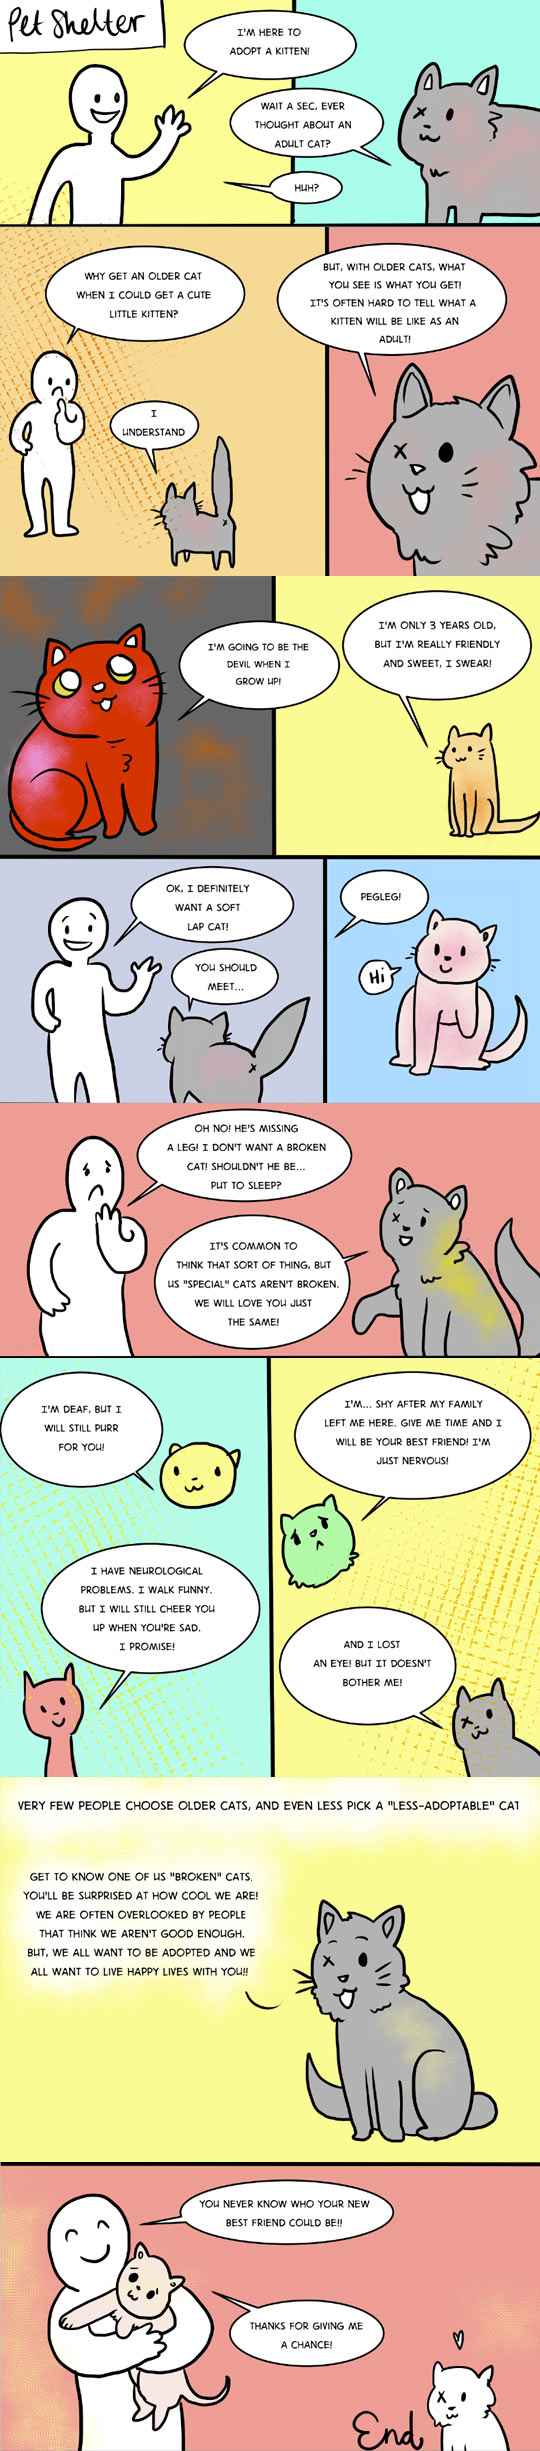 Something To Consider About Pet Shelters